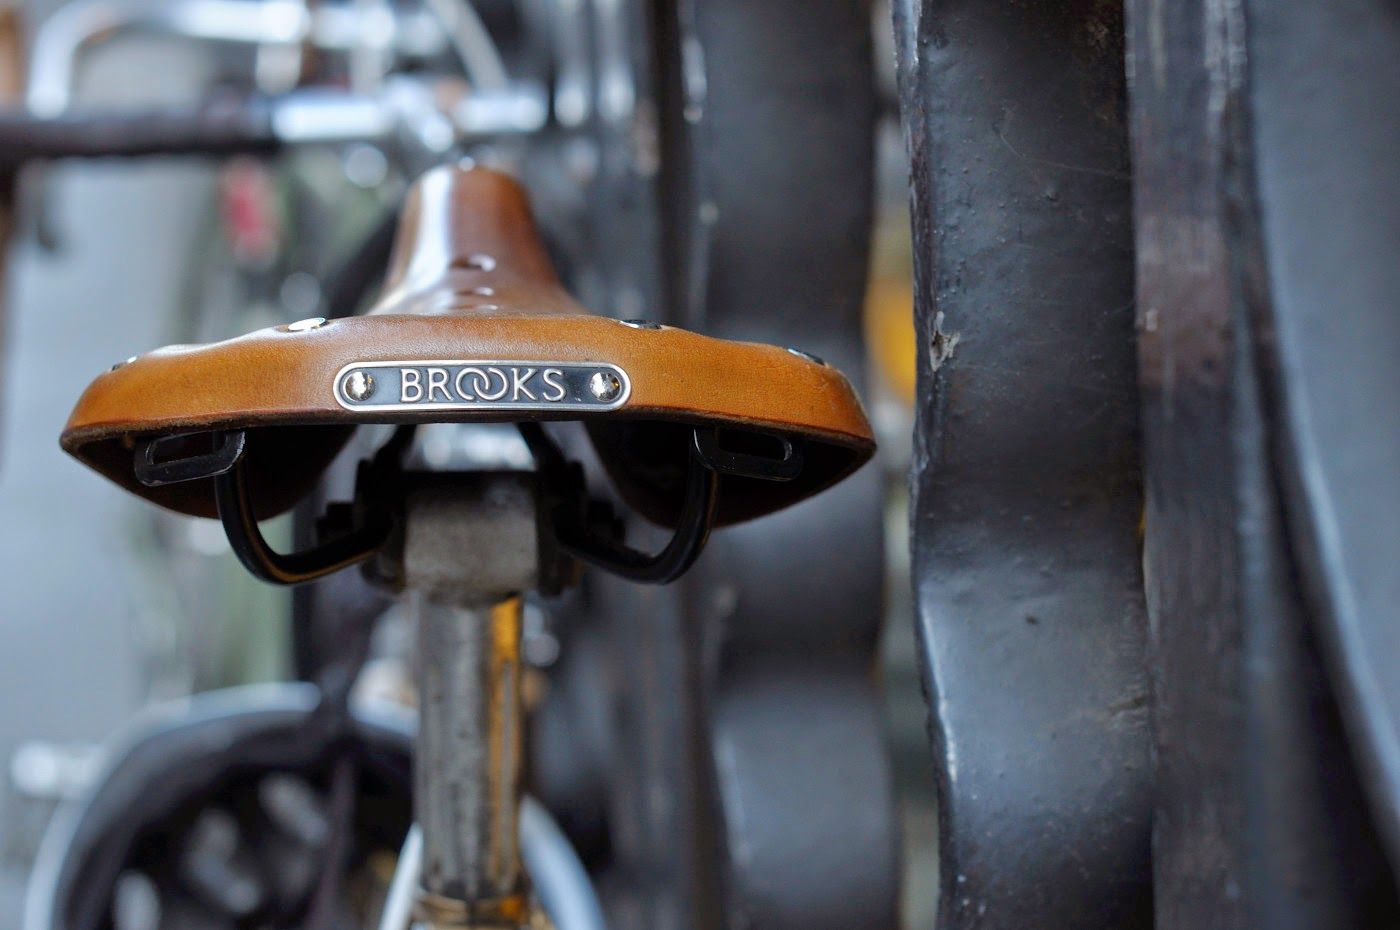 Bespoke, vintage, custom, Tim Macauley, The Biketorialist, The Light Monkey Collective, Melbourne, flinders lane, bicycle, road bike, Apollo, bike, setup, shimano, 600, groupset, brooks, saddle, seat,